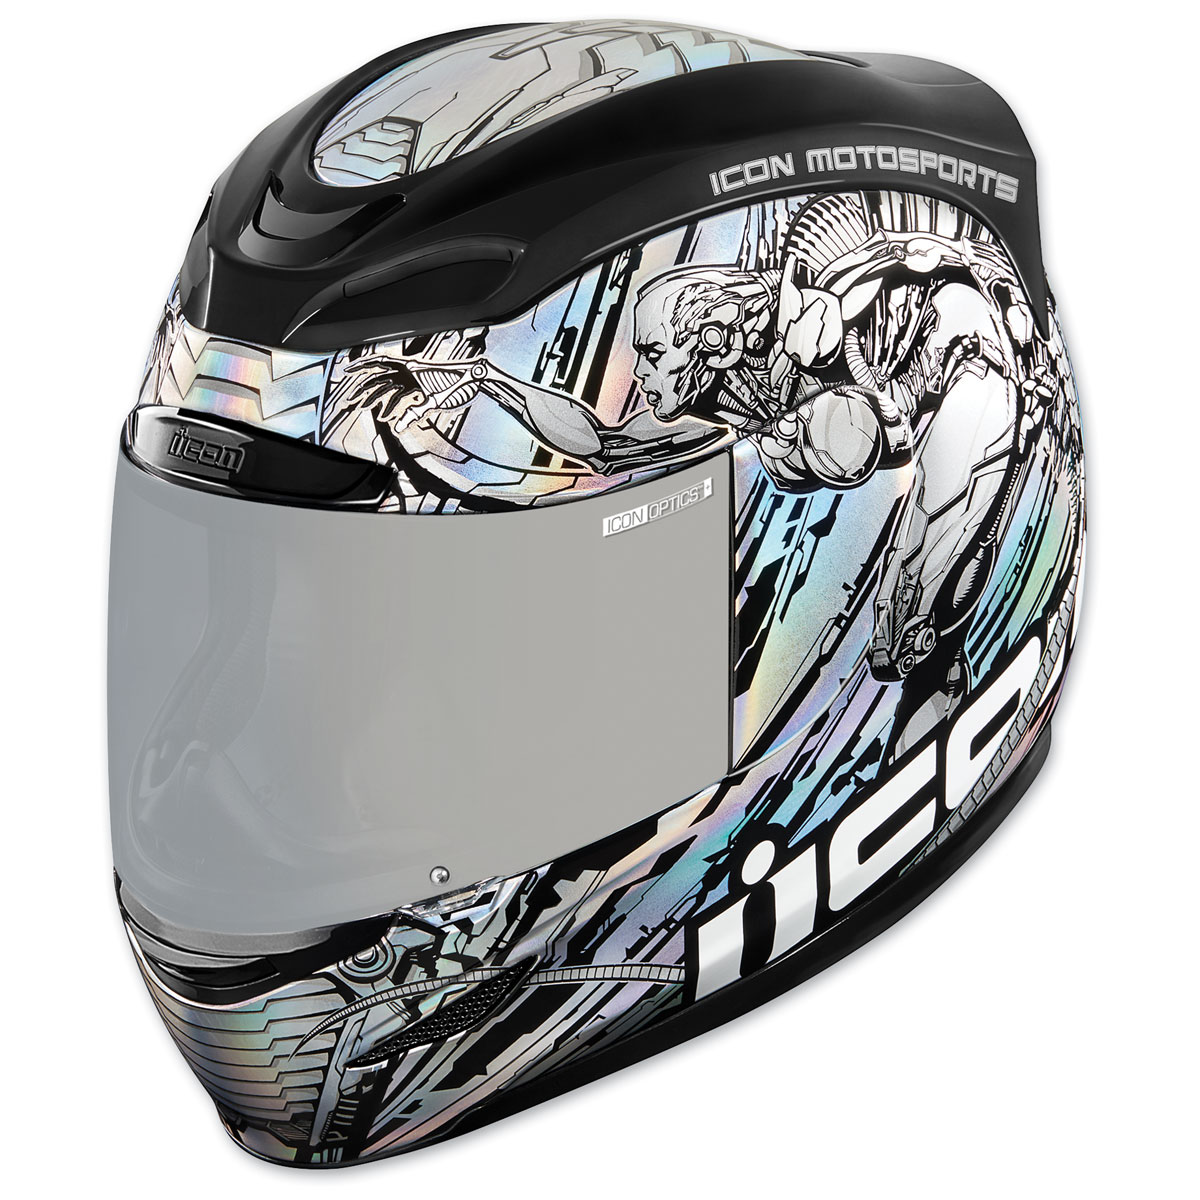 ICON Airmada Mechanica Silver Full Face Helmet